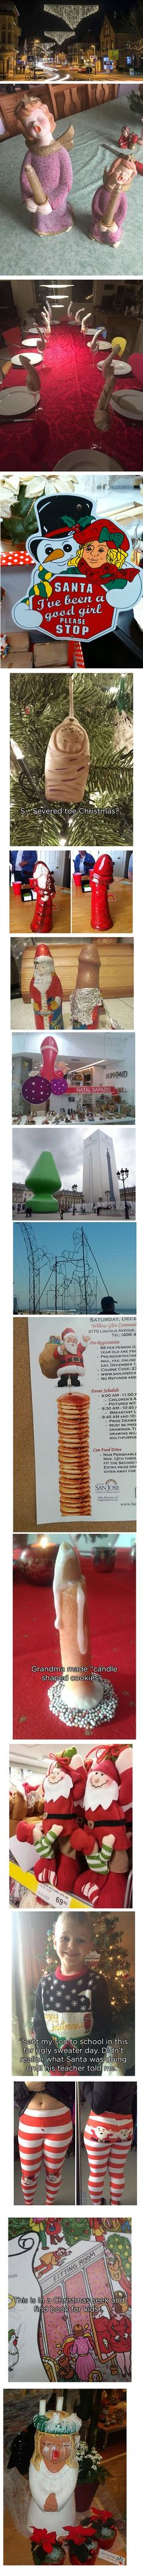 19 Epic Christmas Design Fails That Make The Season Extremely Unforgettable